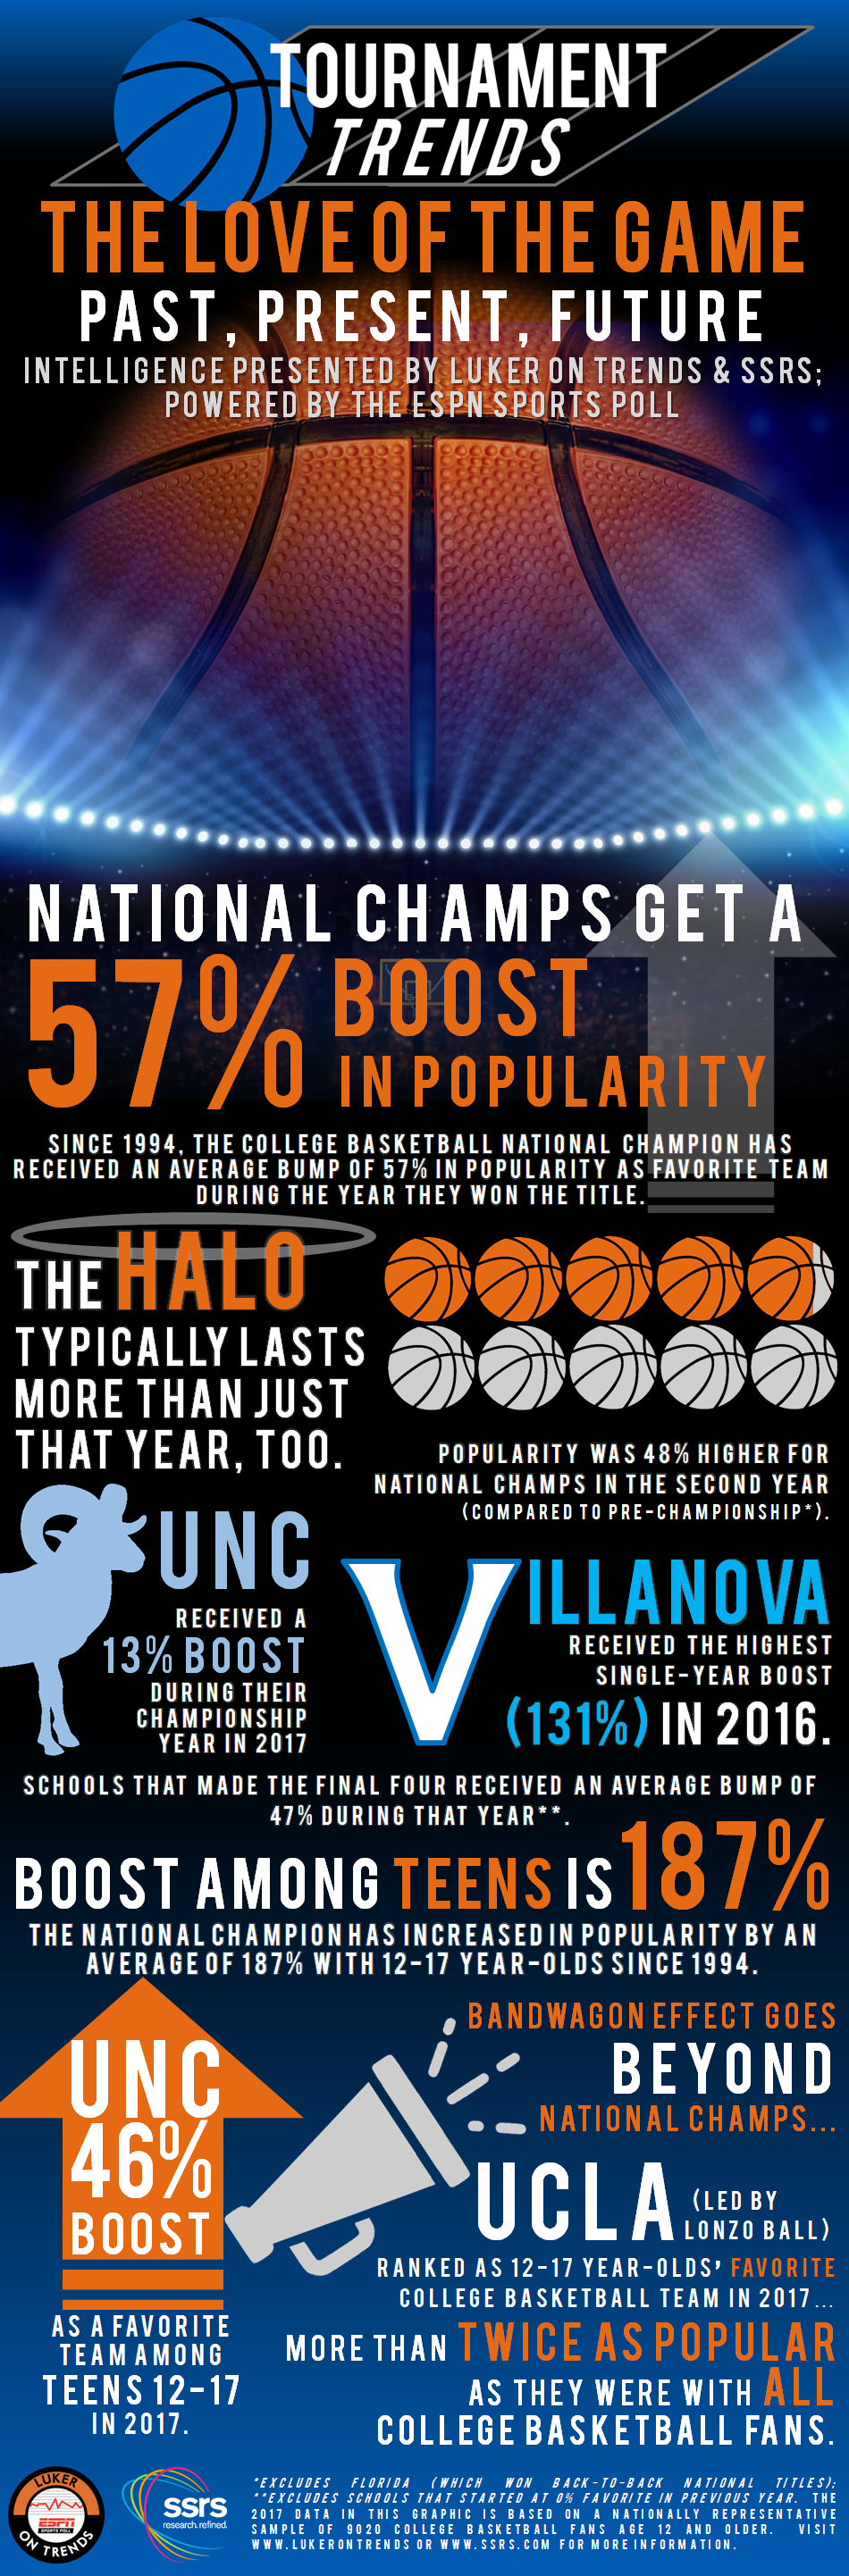 2018 March Madness trends. Click on the graphic for full report.